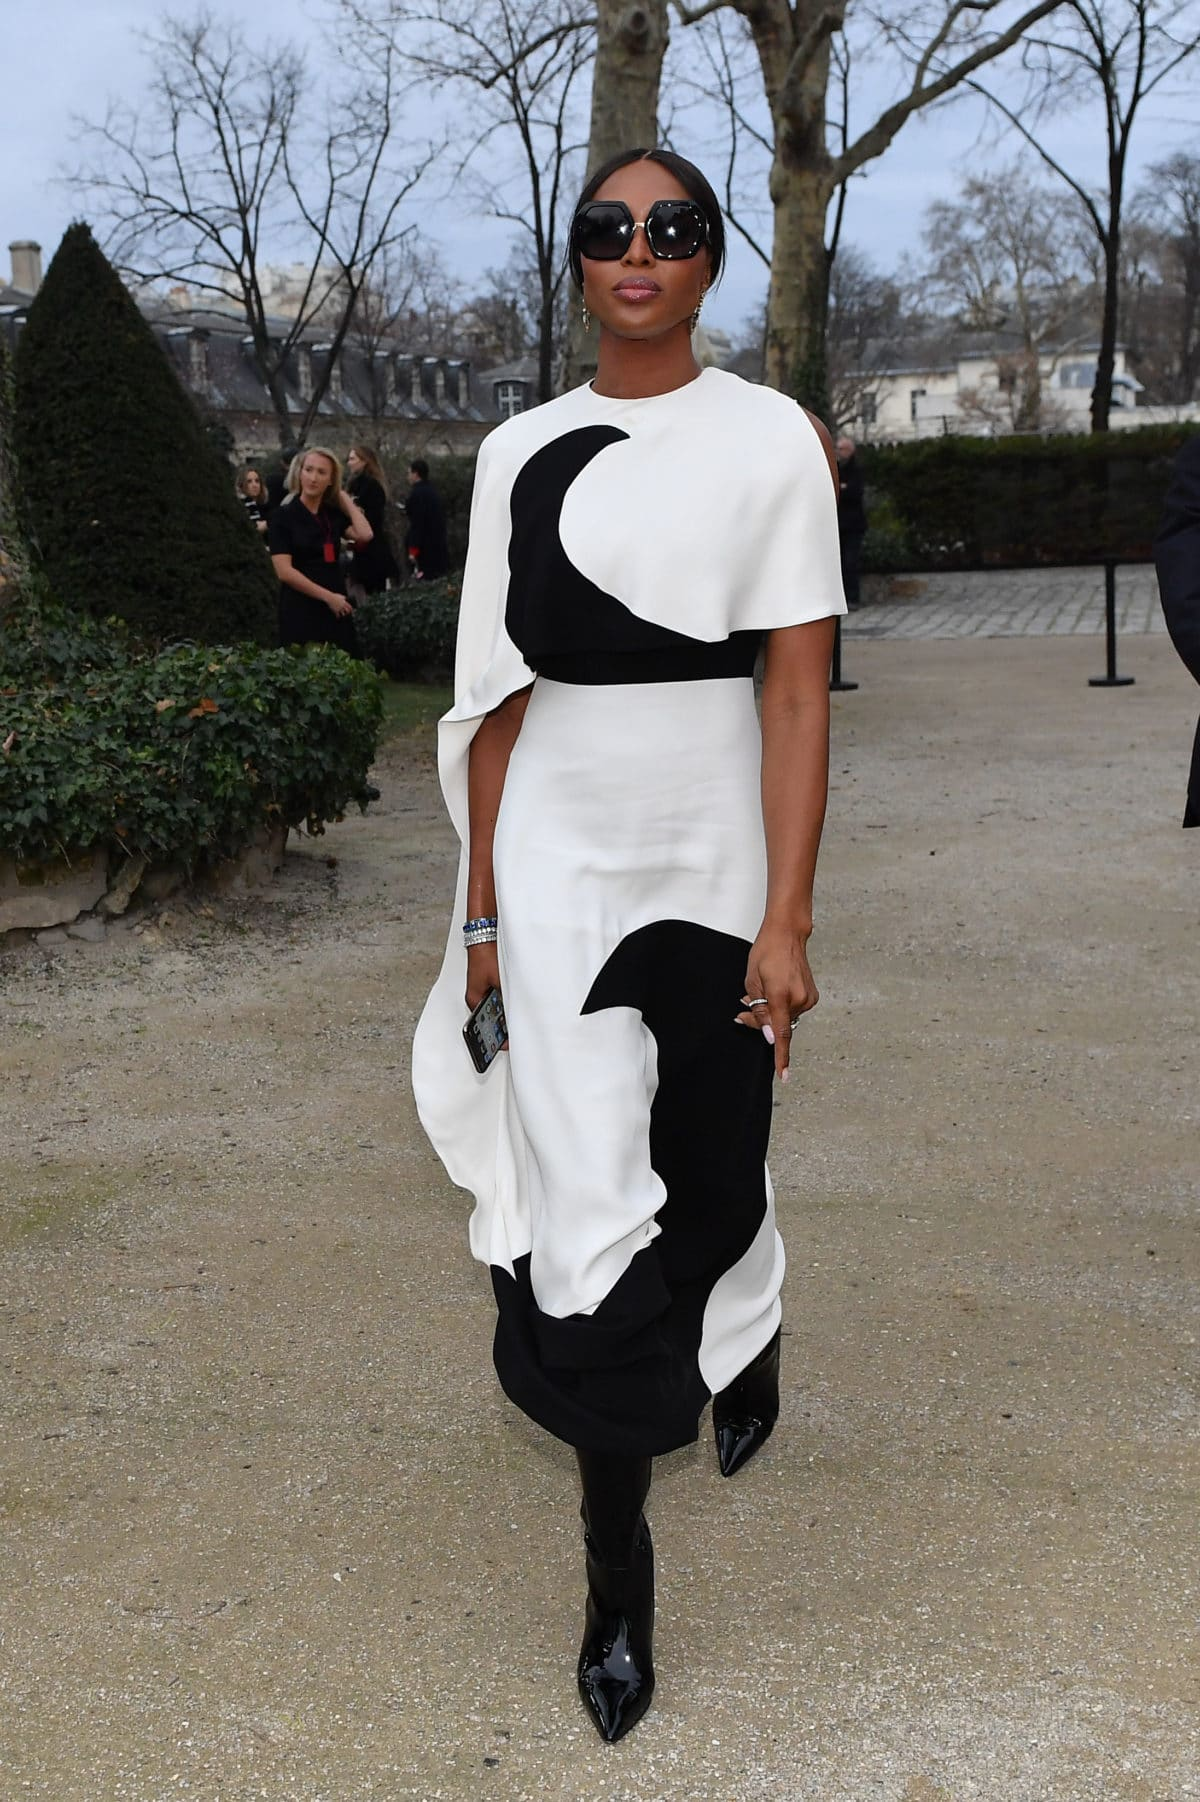 Naomi Campbell, Janelle Monae, Anthony Anderson And More Celebs Out And About